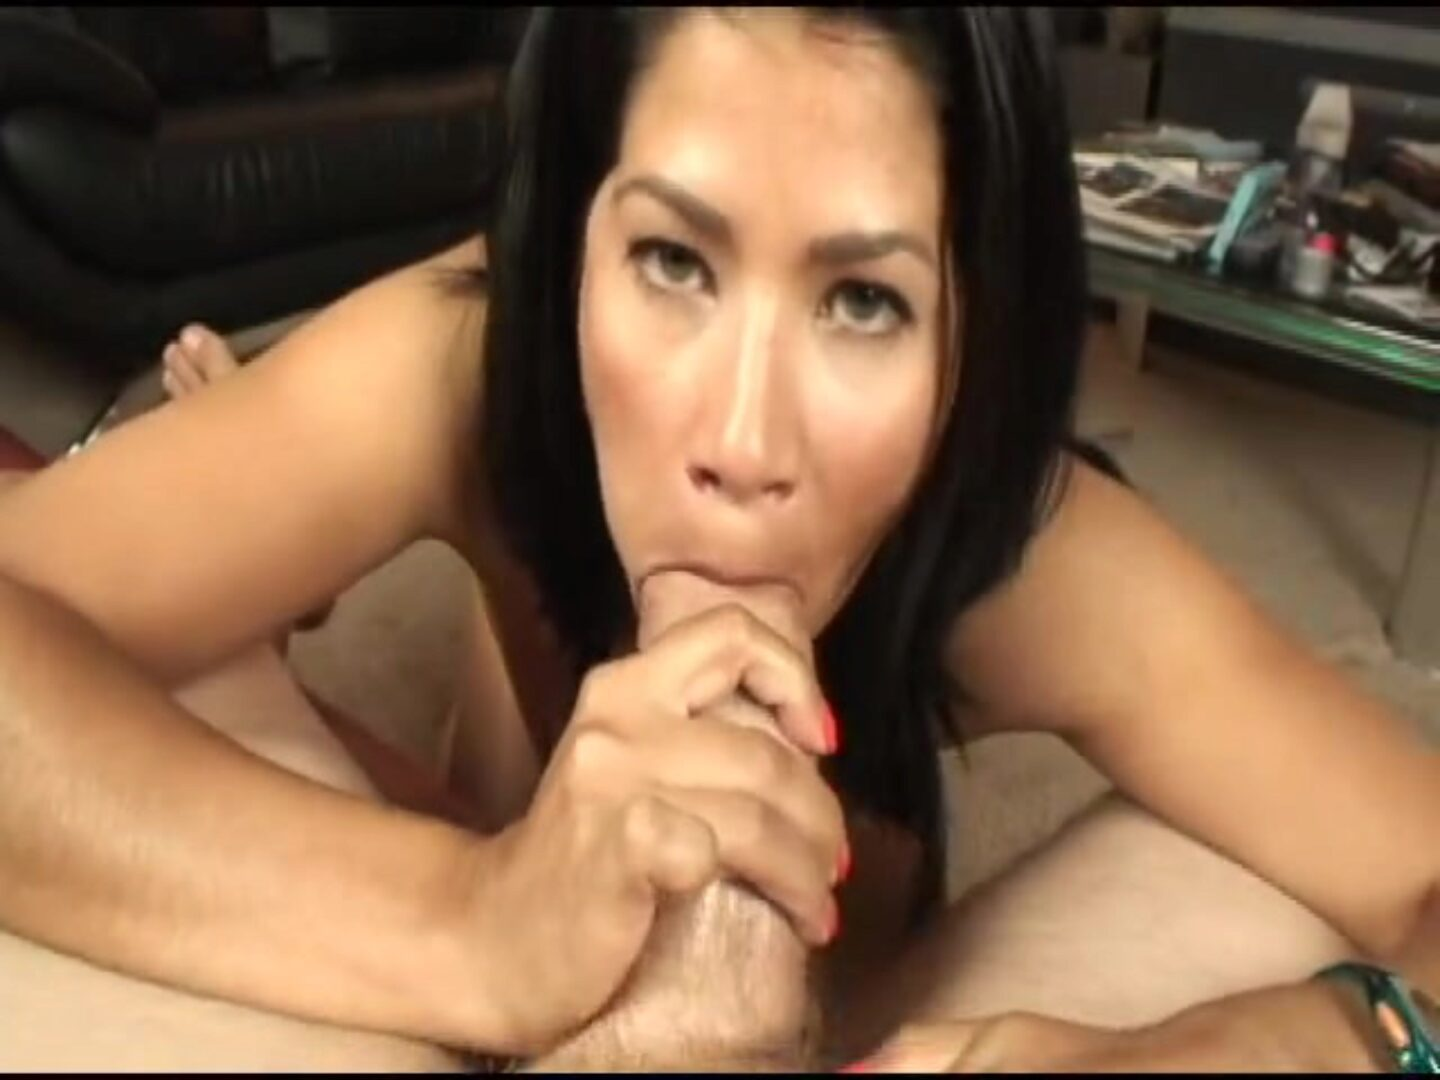 Chica%27s Place oral-job spunk fountain Super-hot latina hottie gives a naughty oral-job There is a sex toy taped to her leg